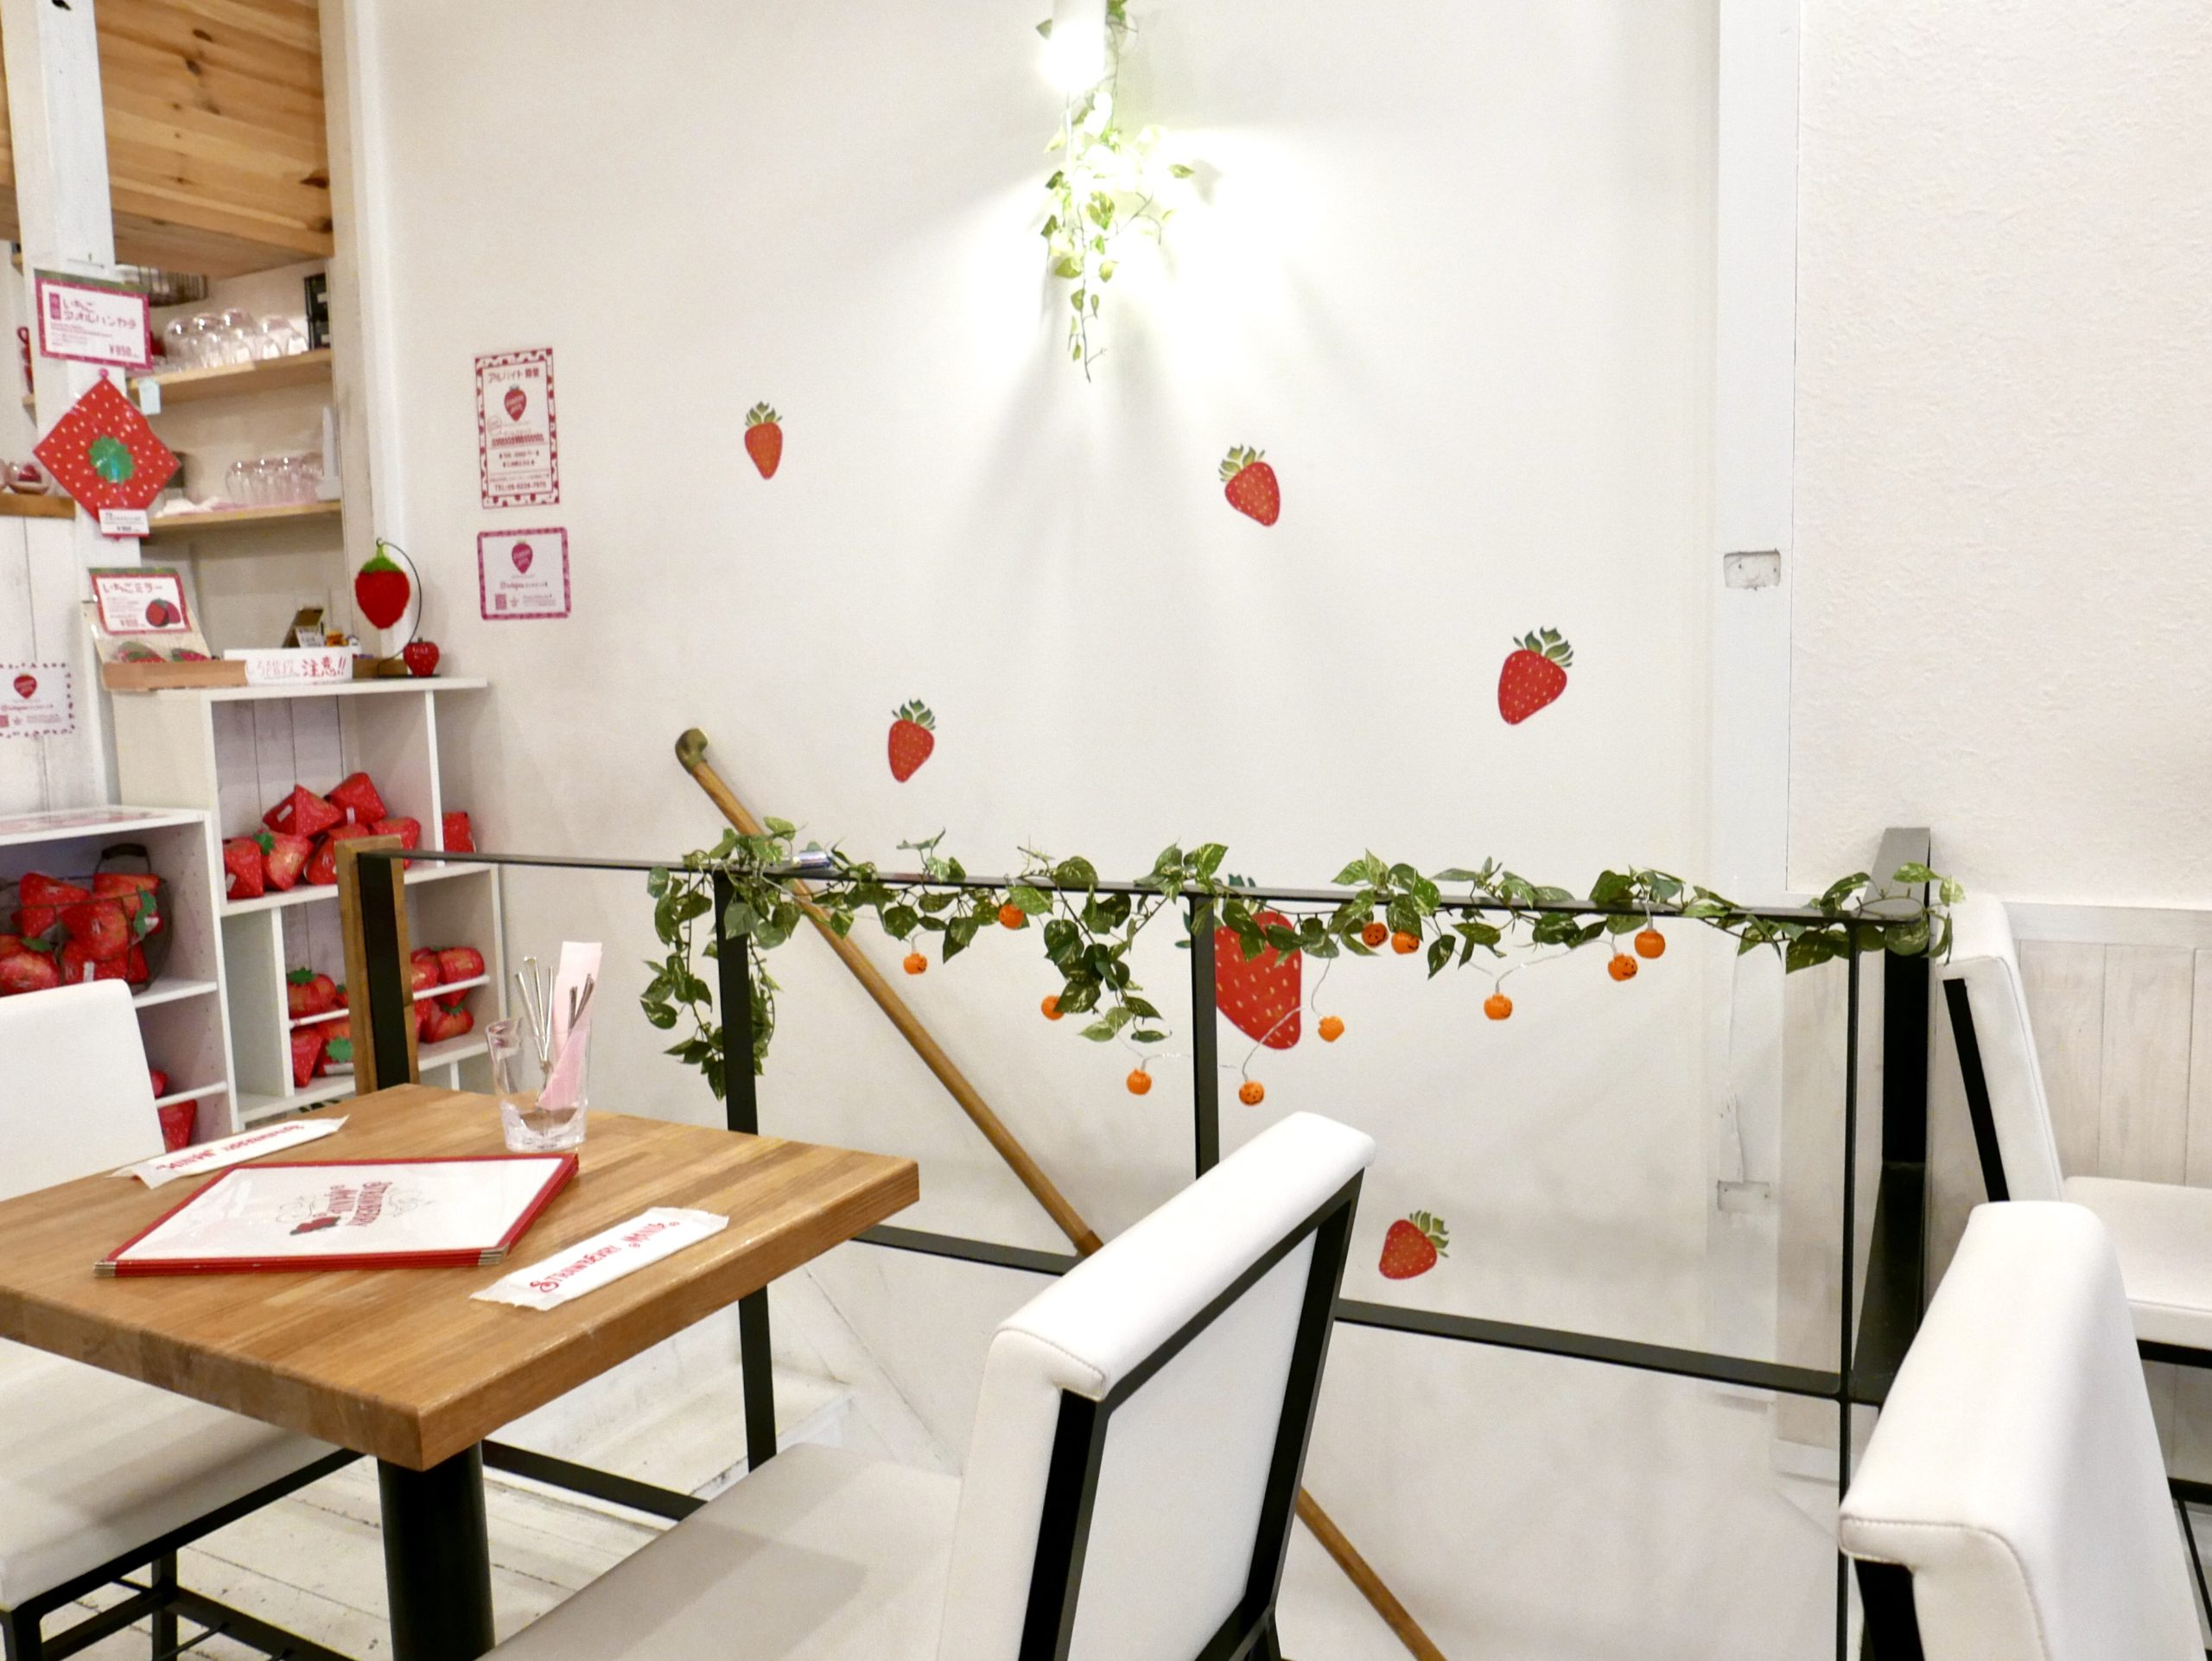 The inside of a cafe with strawberry themed decor